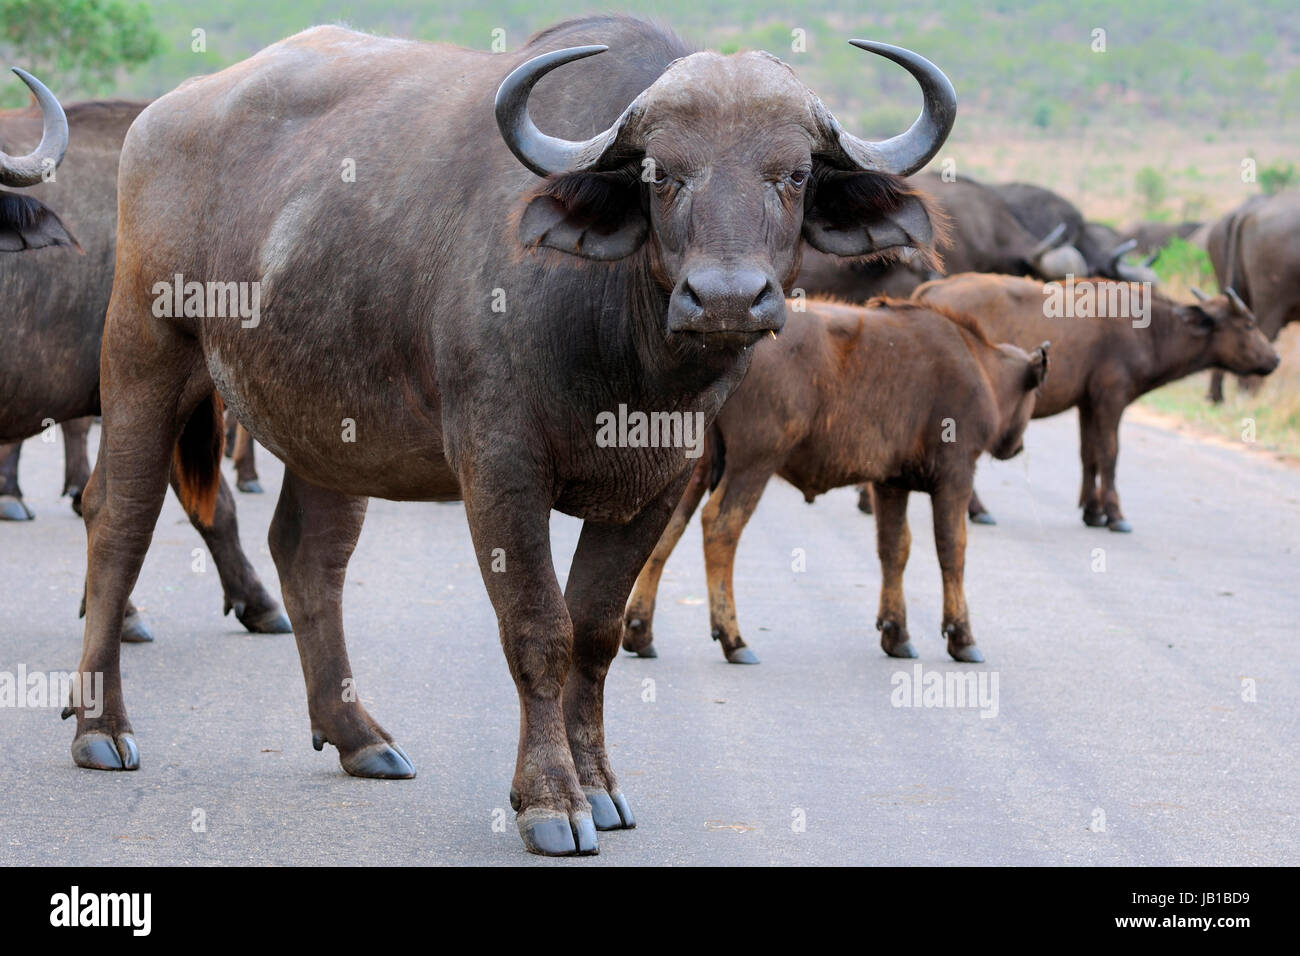 African buffaloes or Cape buffaloes (Syncerus caffer), herd crossing a paved road, Kruger National Park, South Africa - Stock Image